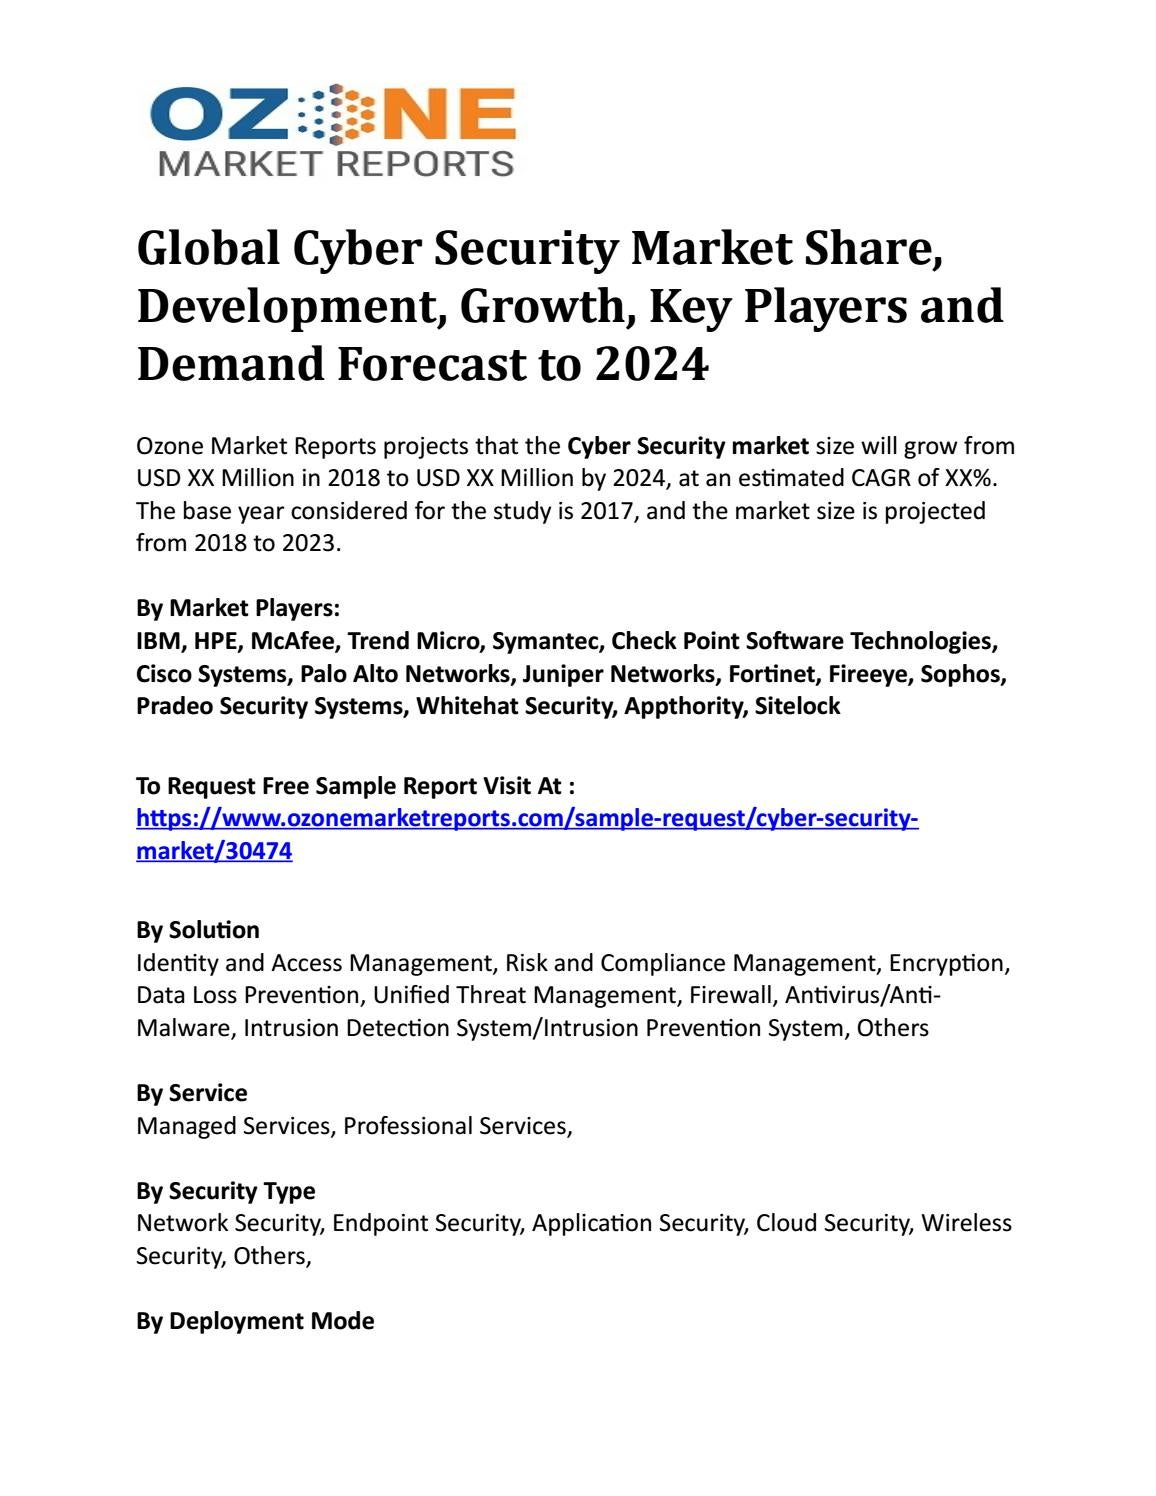 Global Cyber Security Market Share, Development, Growth, Key